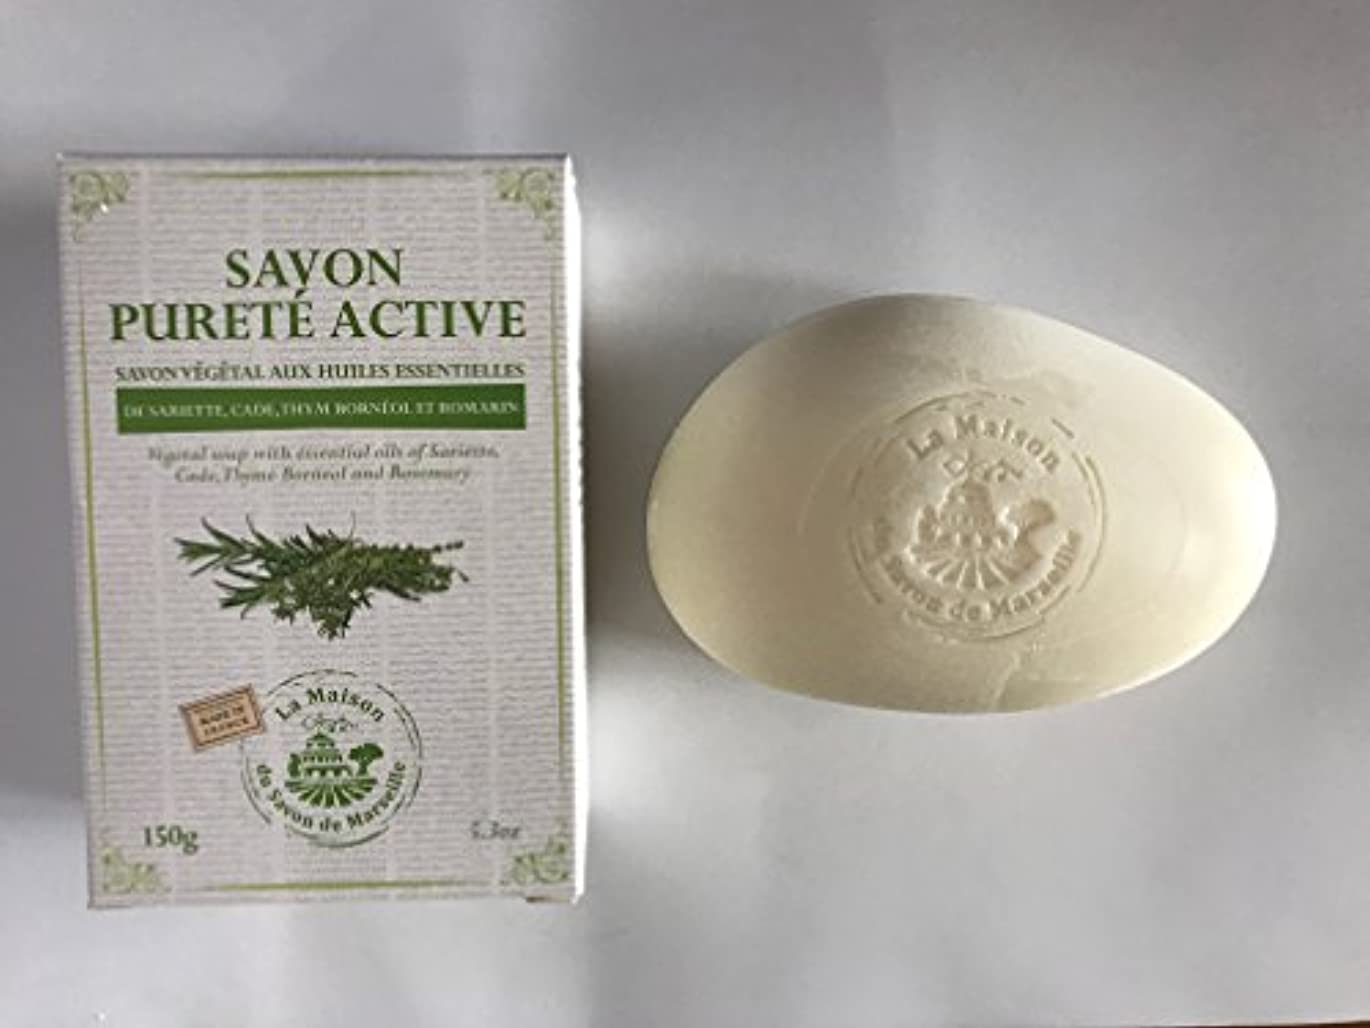 Savon de Marseille Soap with essential oils,Purete active 150g